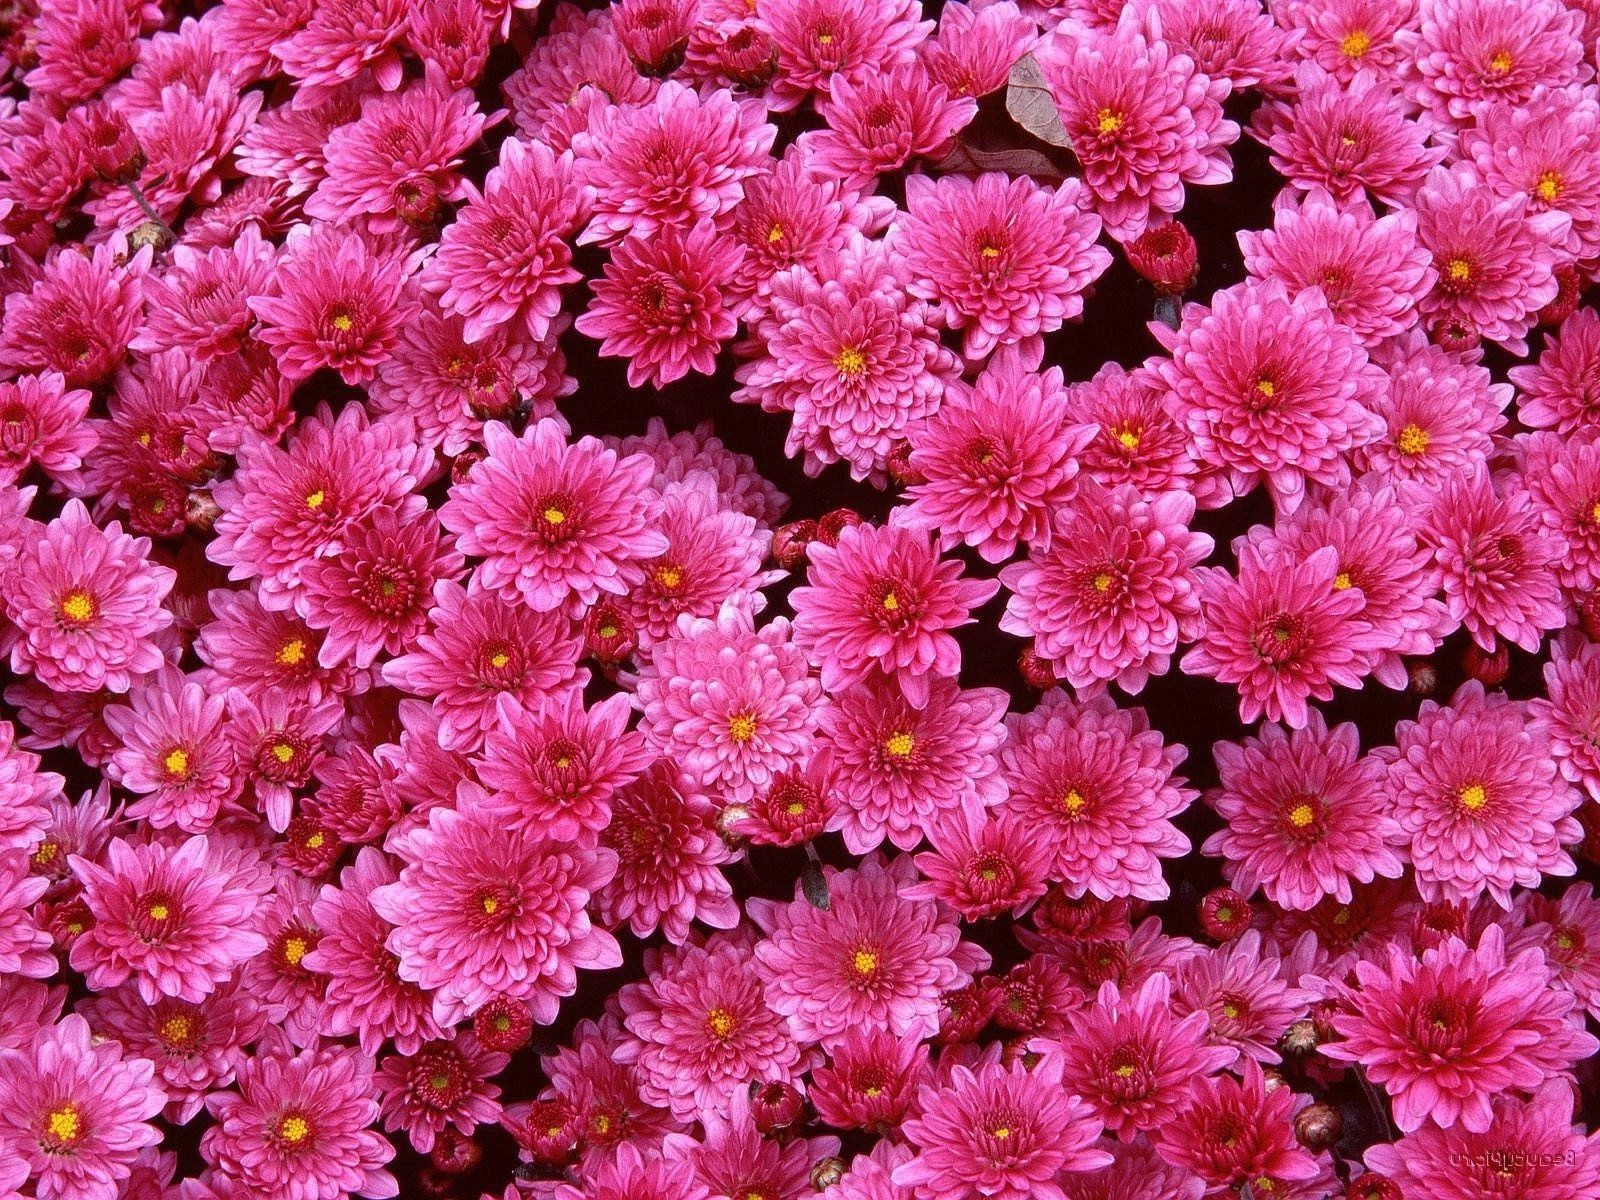 Bushes of chrysanthemums